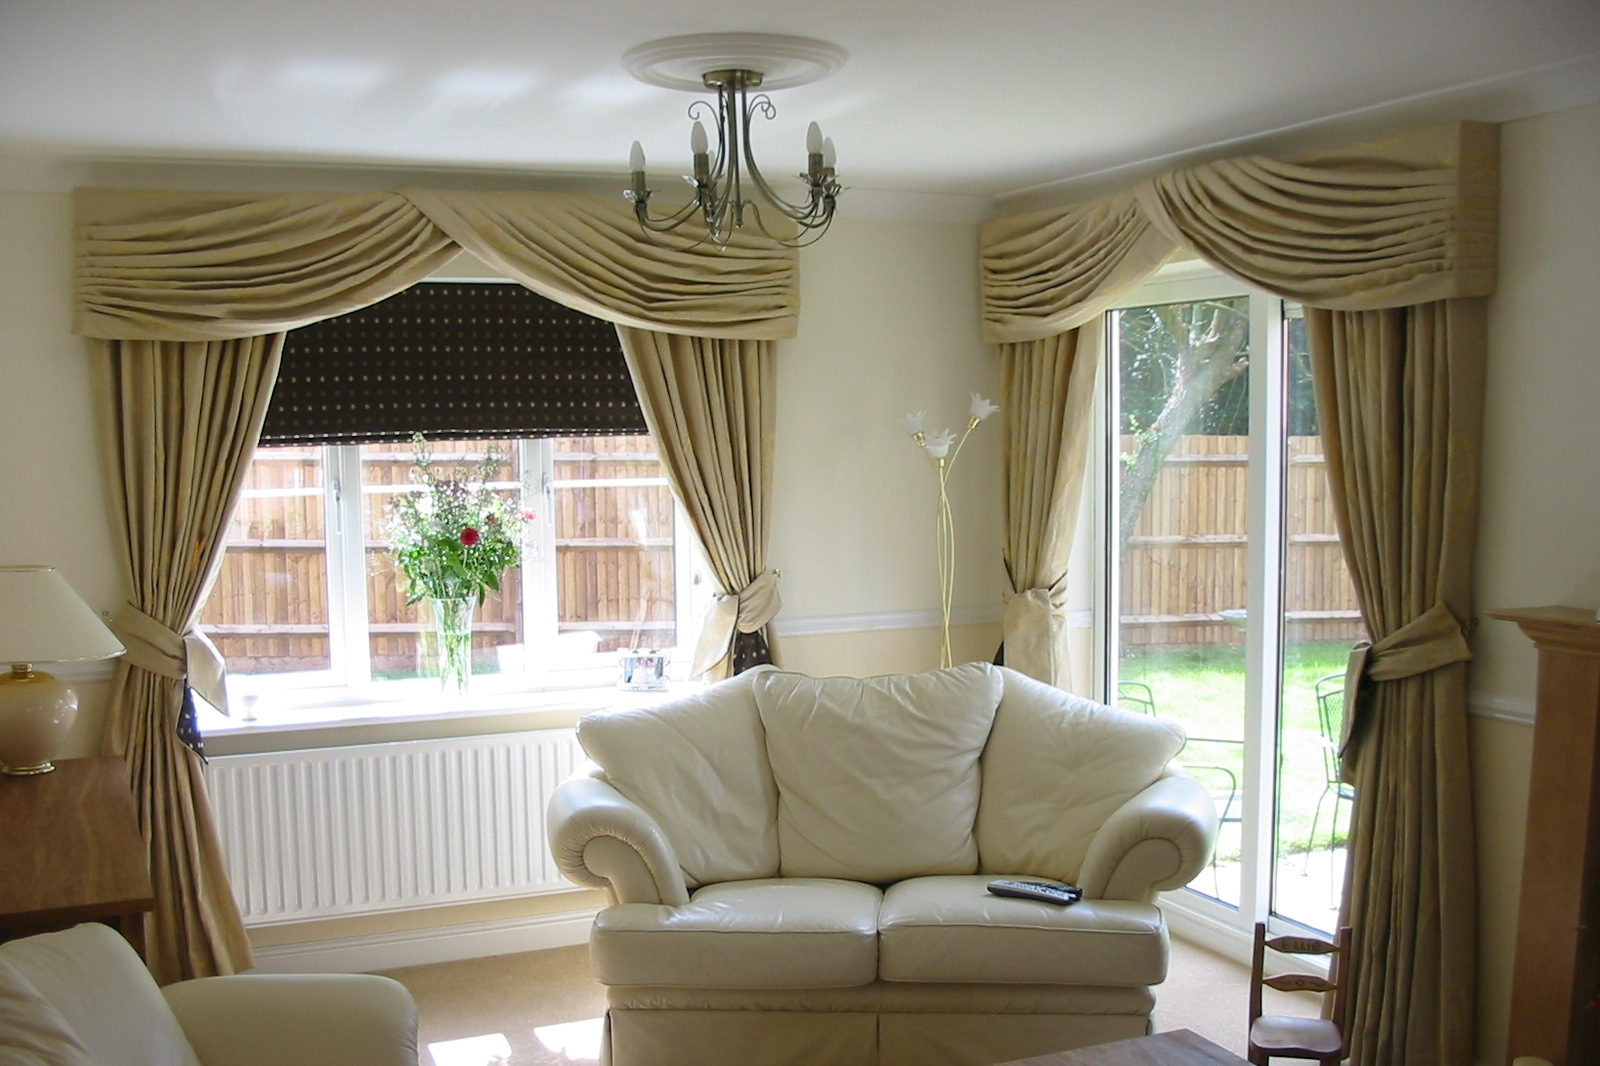 curtains and pelmet designs for a living room